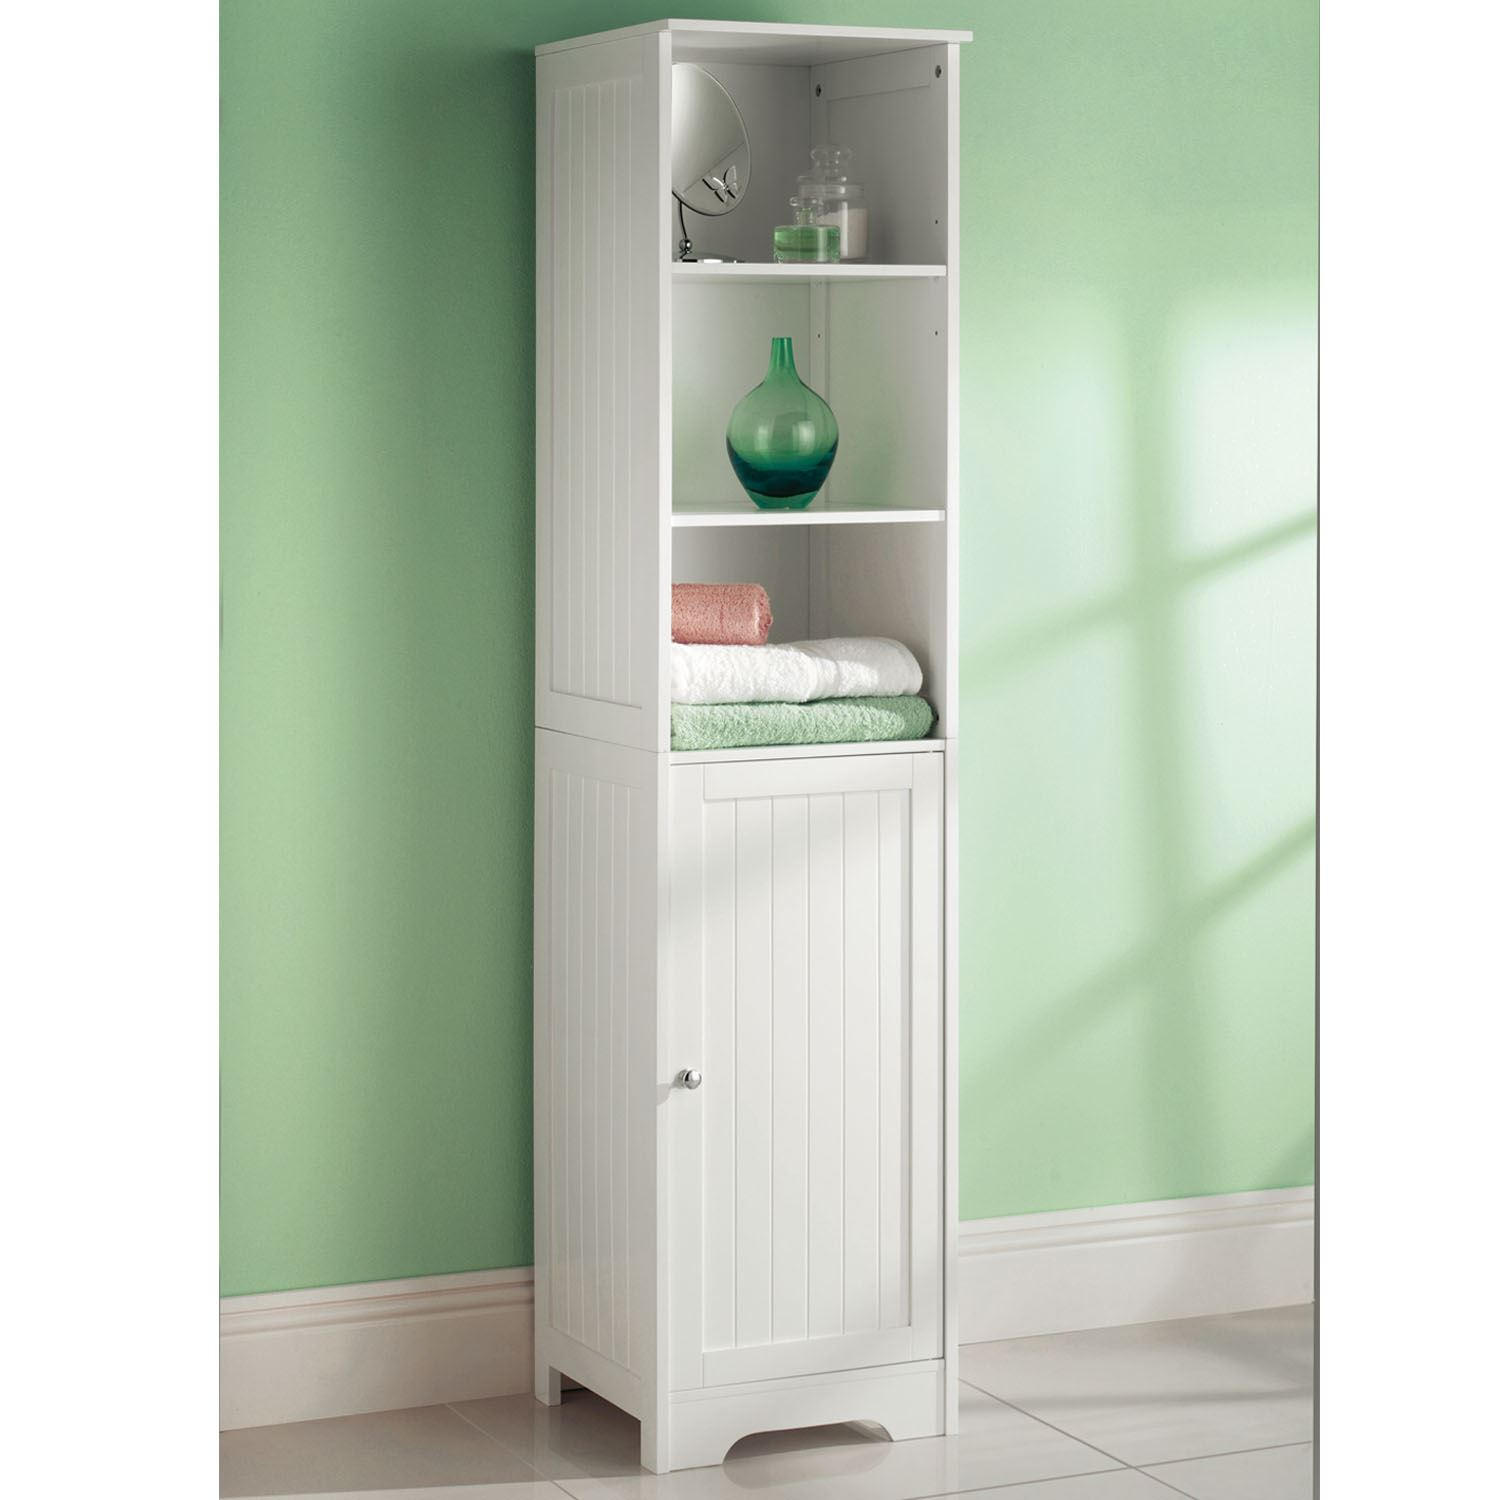 Tallboy Bathroom Cabinets White Wooden Bathroom Cabinet Shelf Cupboard Bedroom Storage Unit